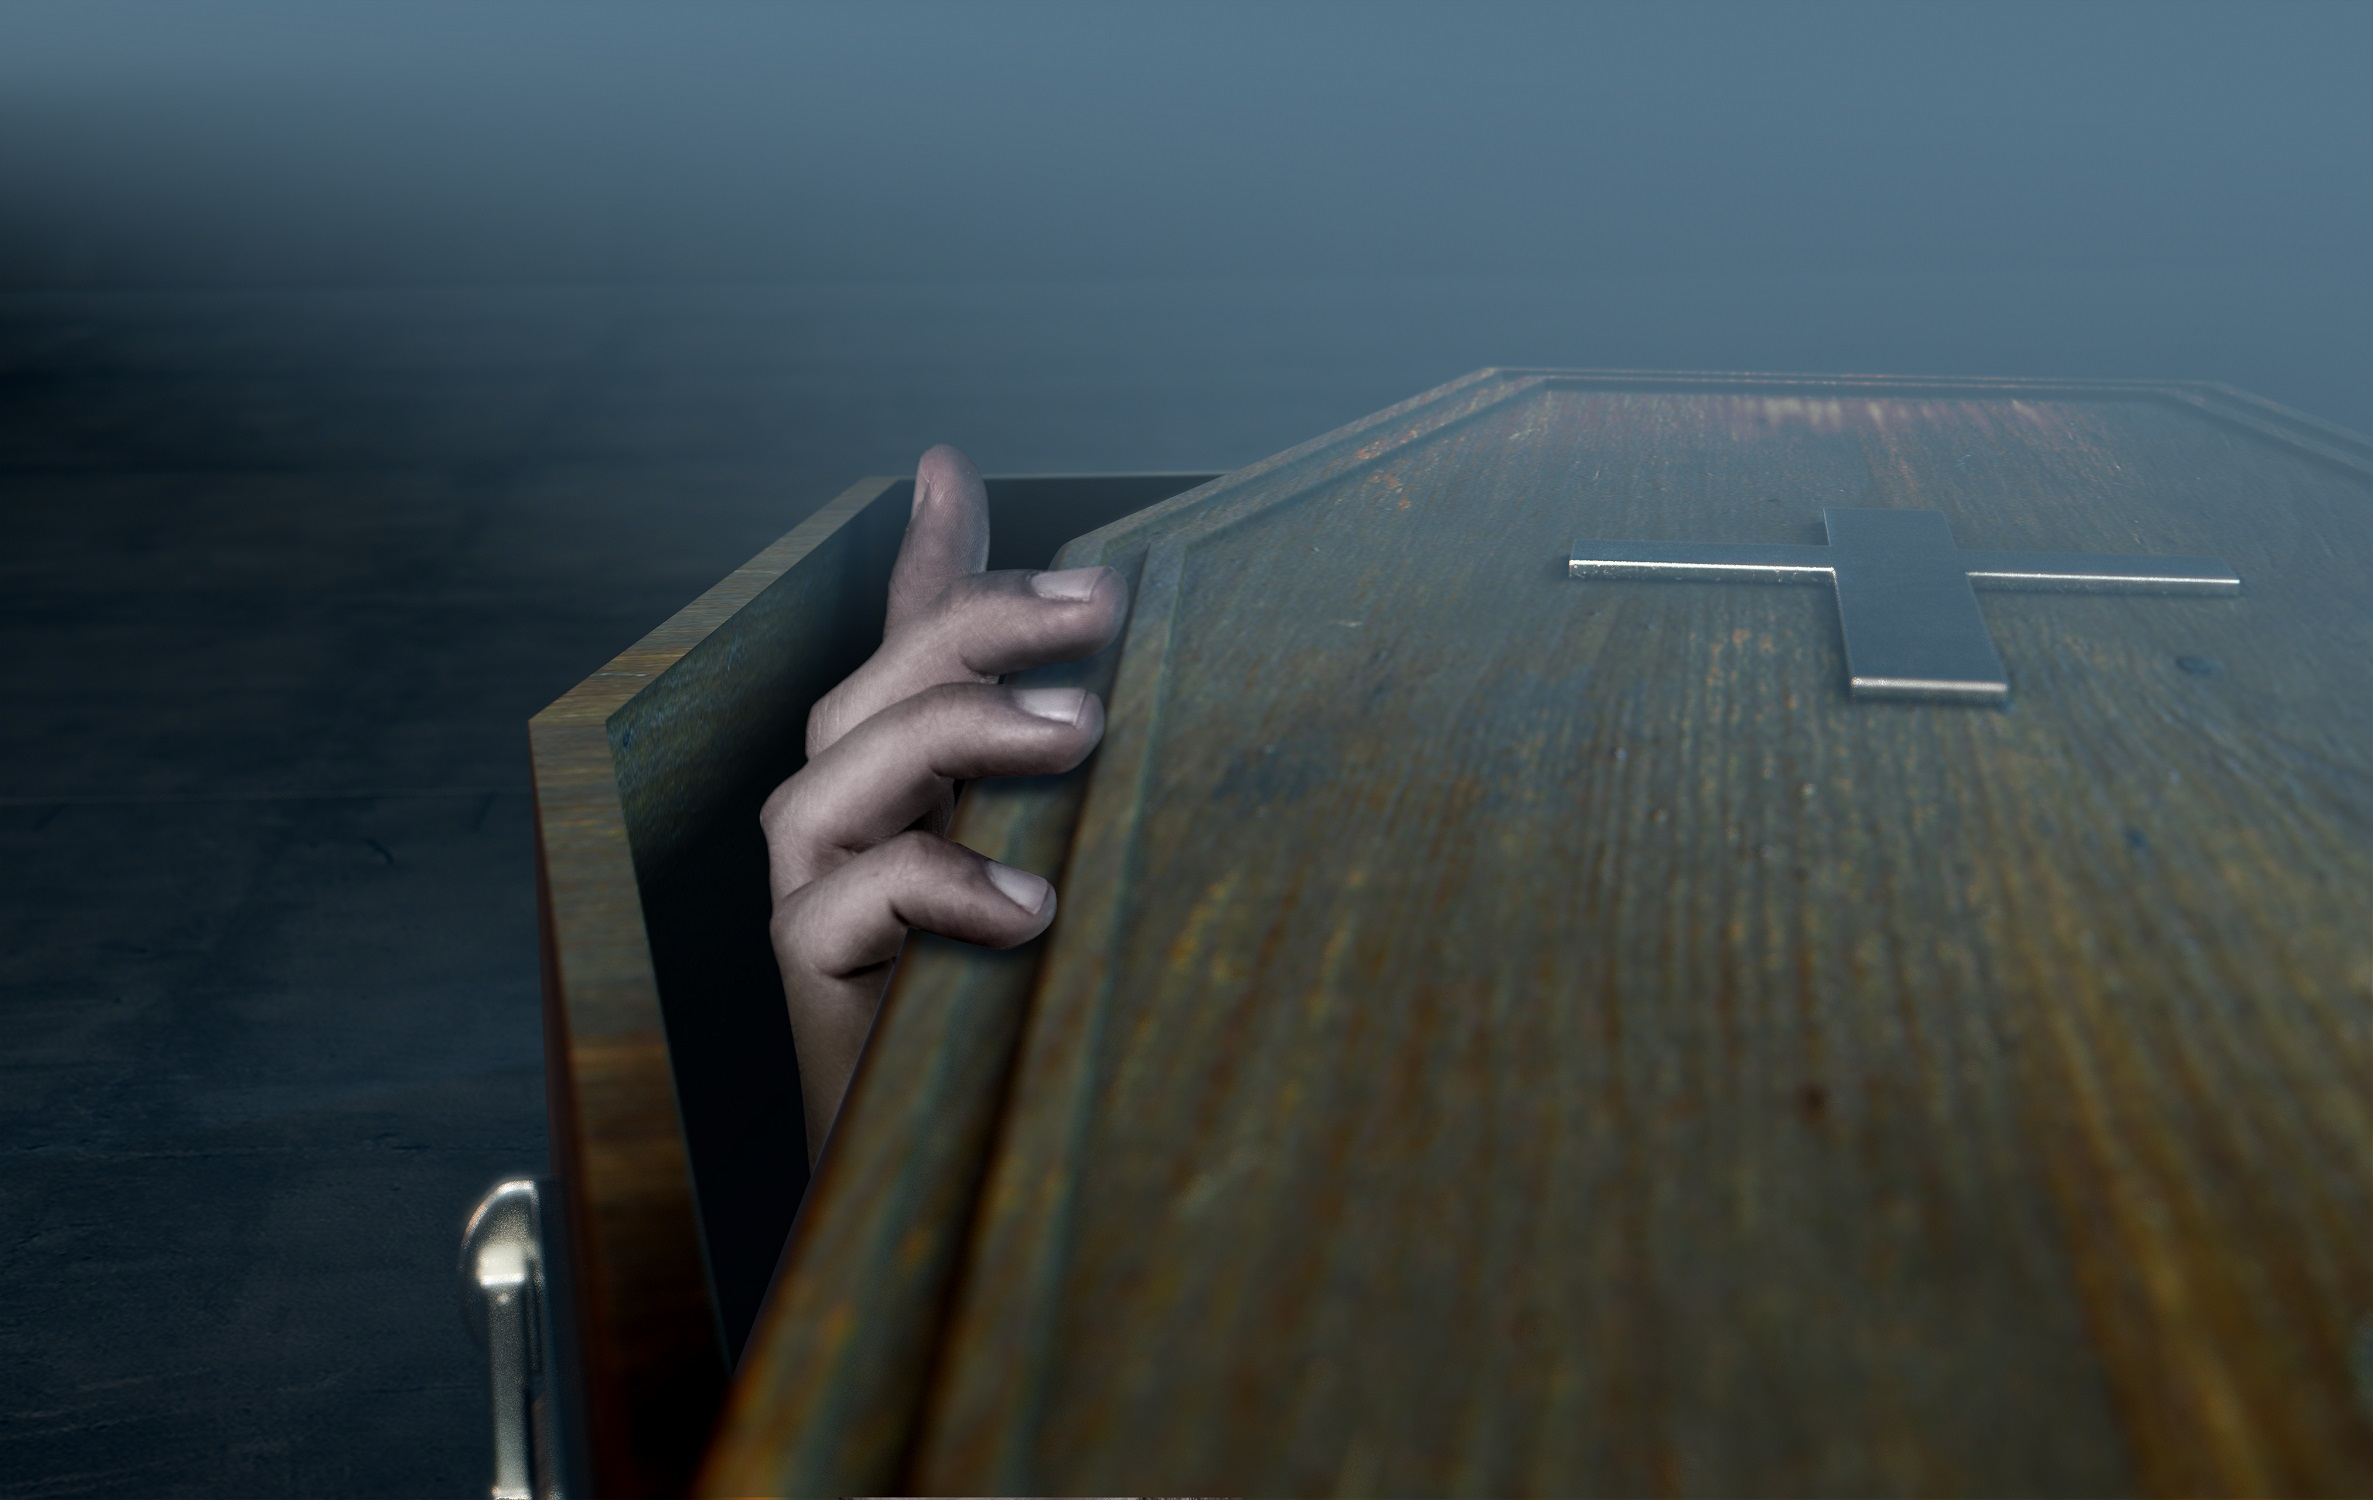 Hand Coming Out Of Coffin Foggy